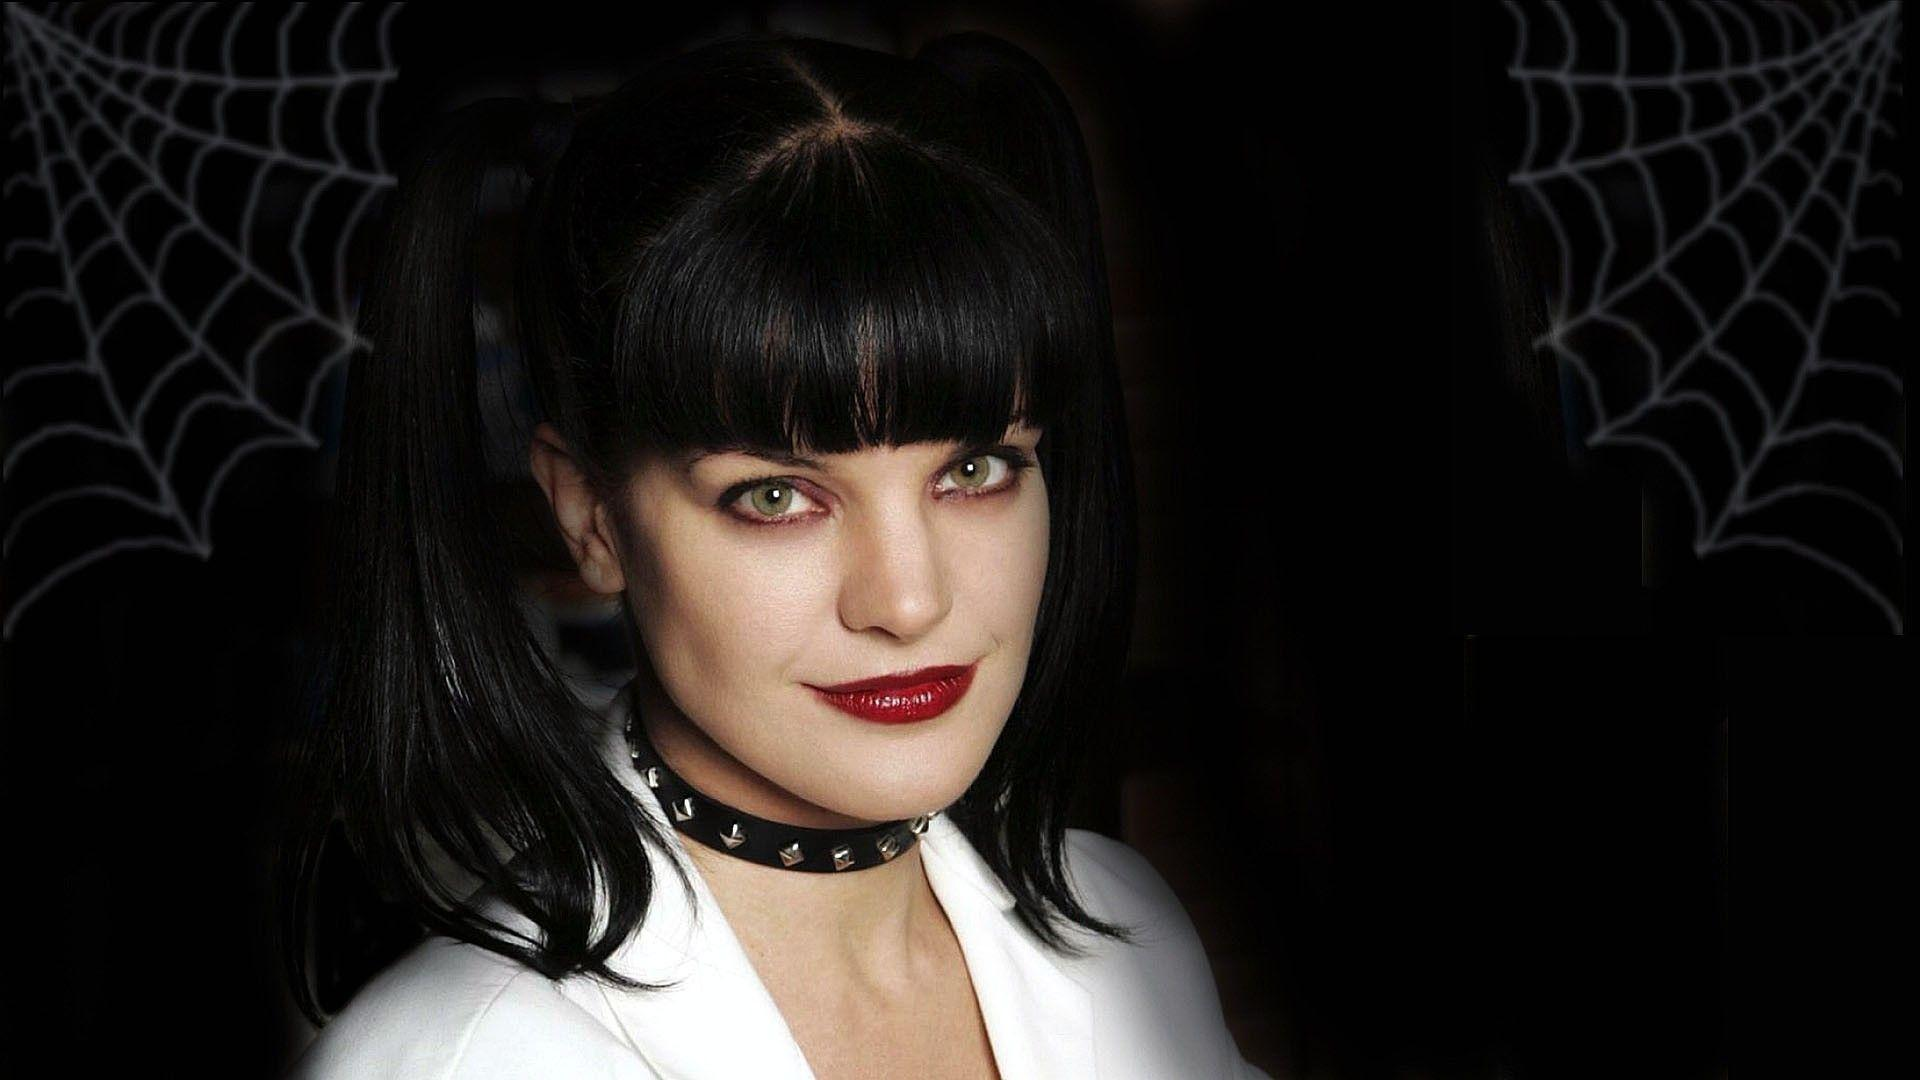 ncis girls images abby - photo #14